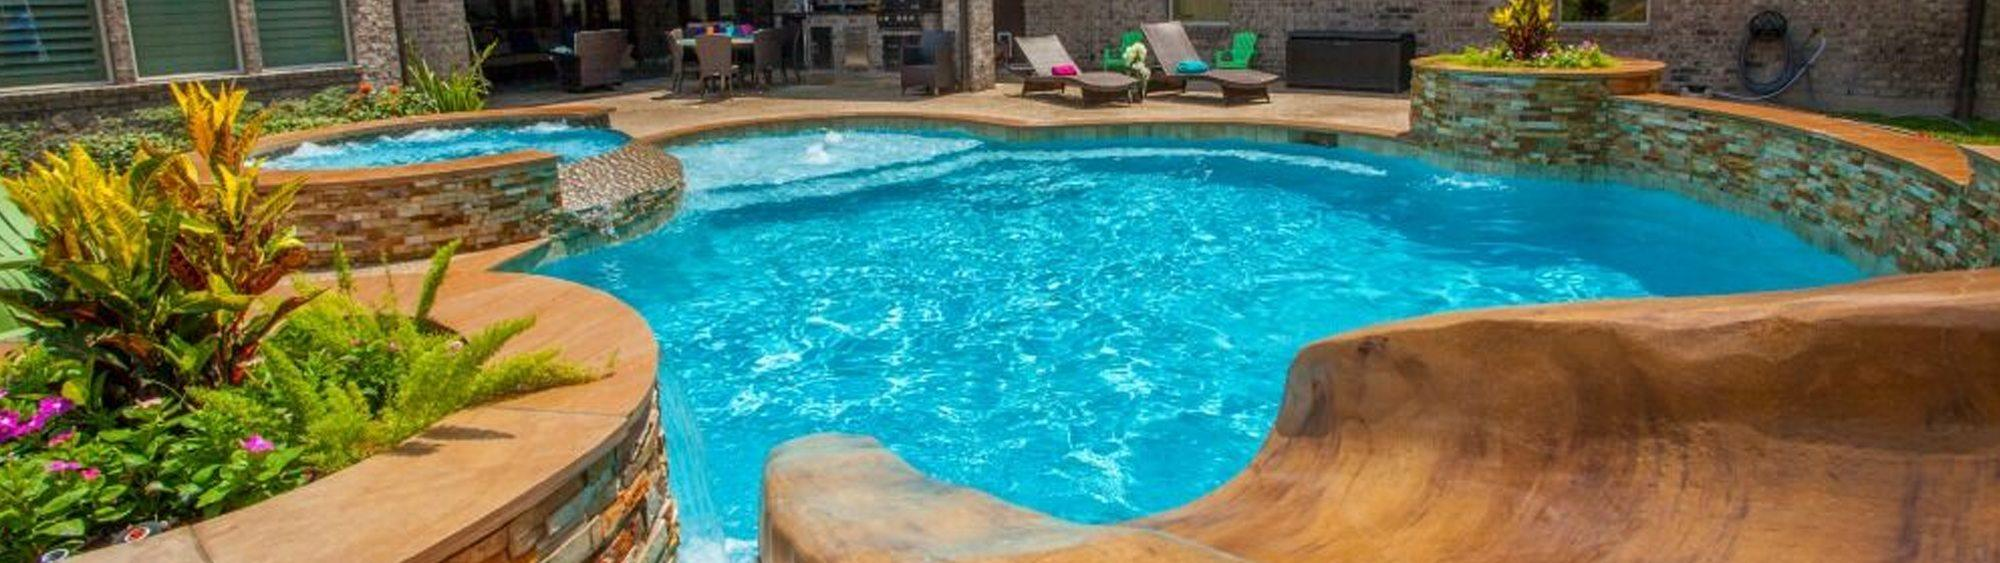 Pool Builder Spring TX